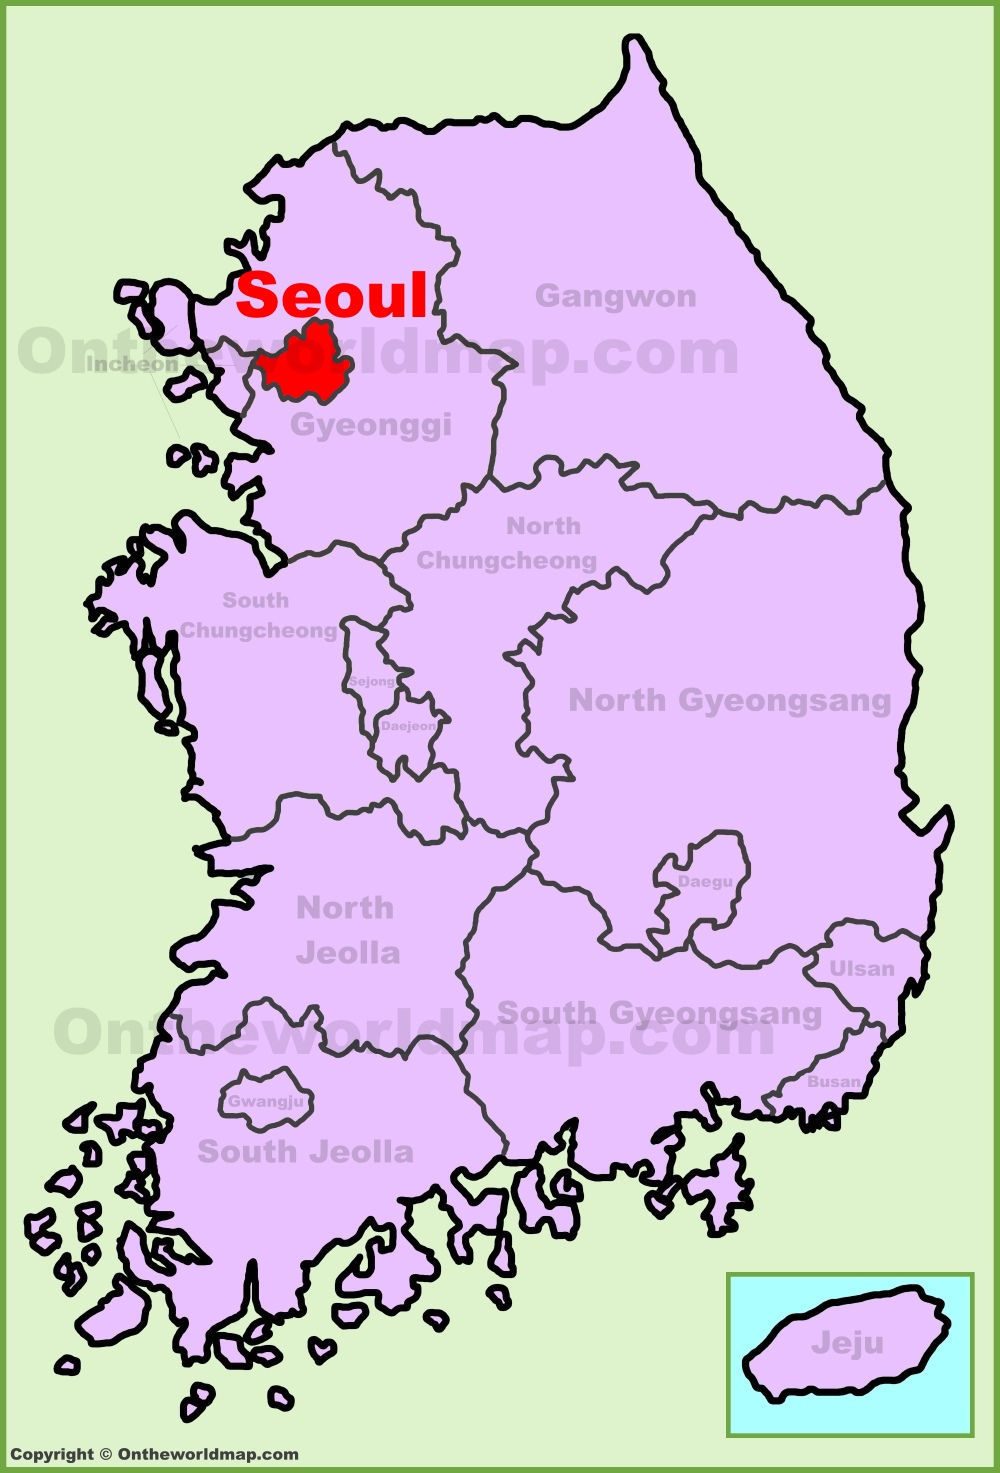 Seoul location on the south korea map seoul location on the south korea map gumiabroncs Image collections